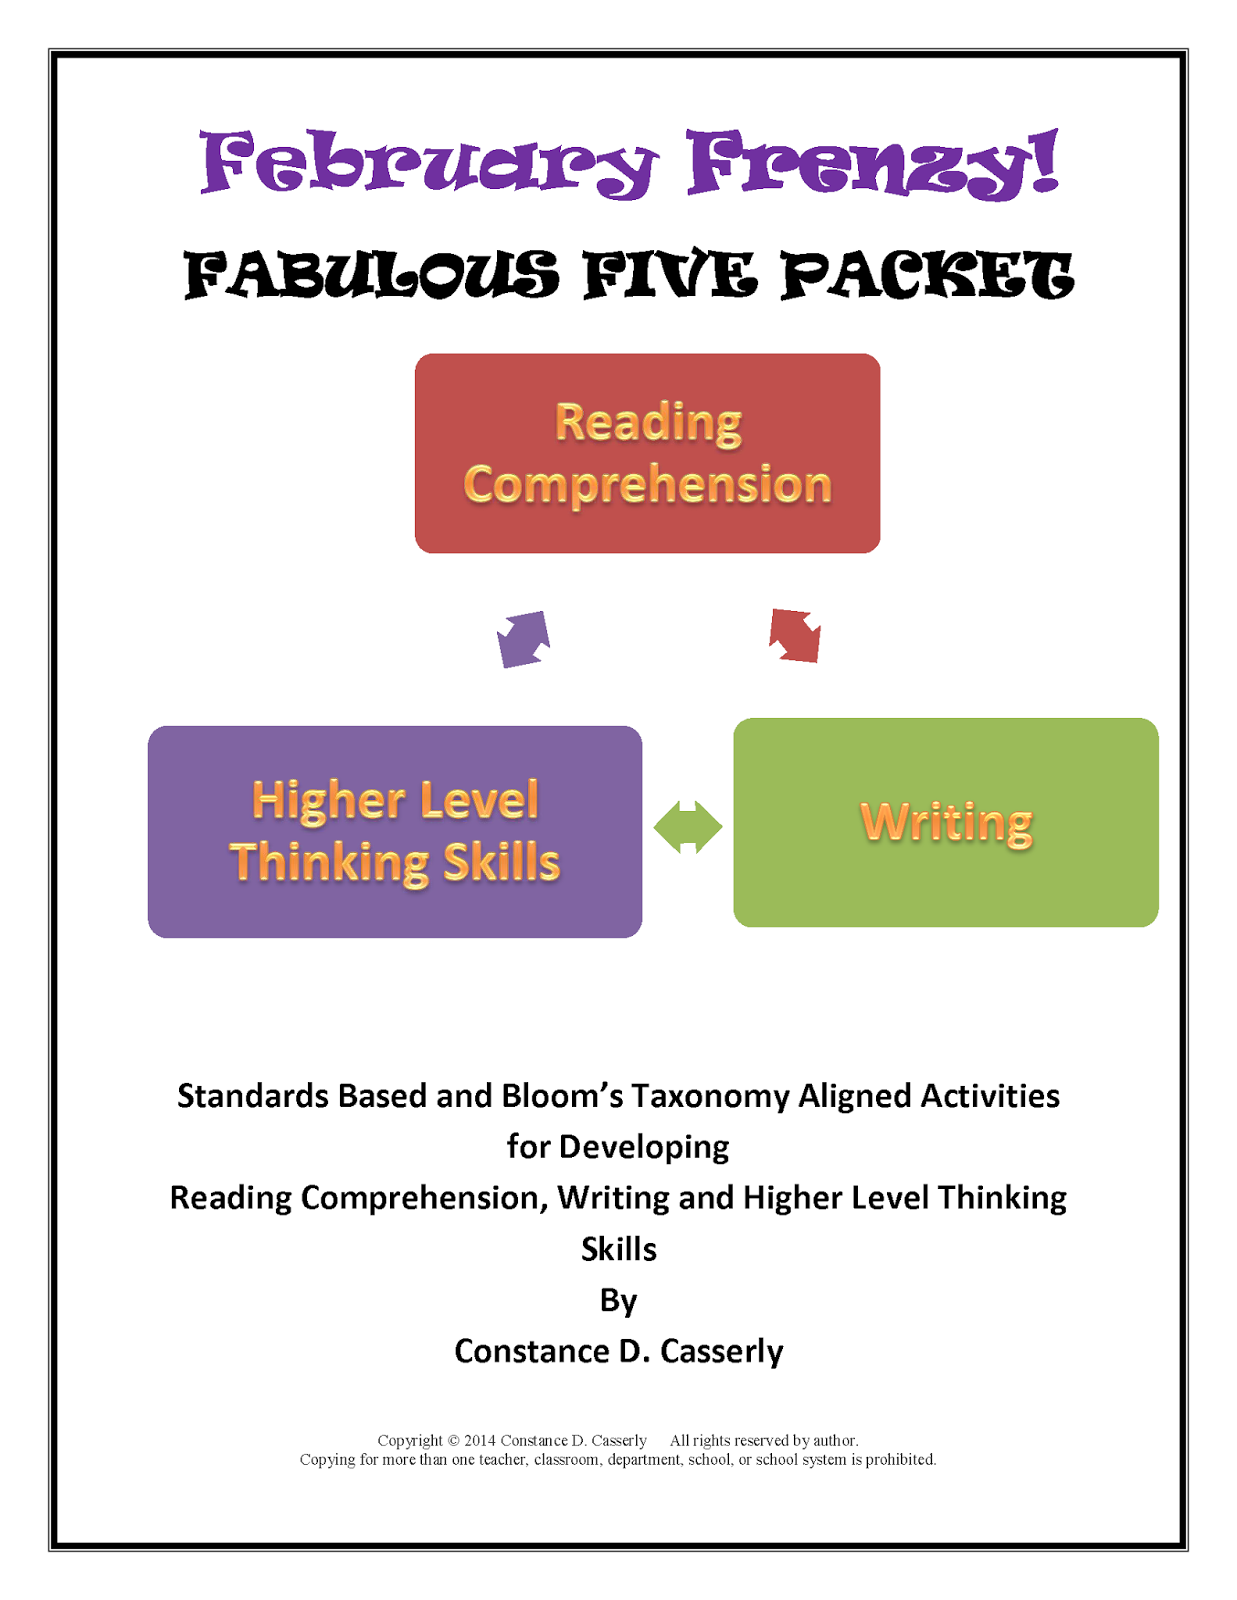 February Frenzy: Fabulous Five Packet cover